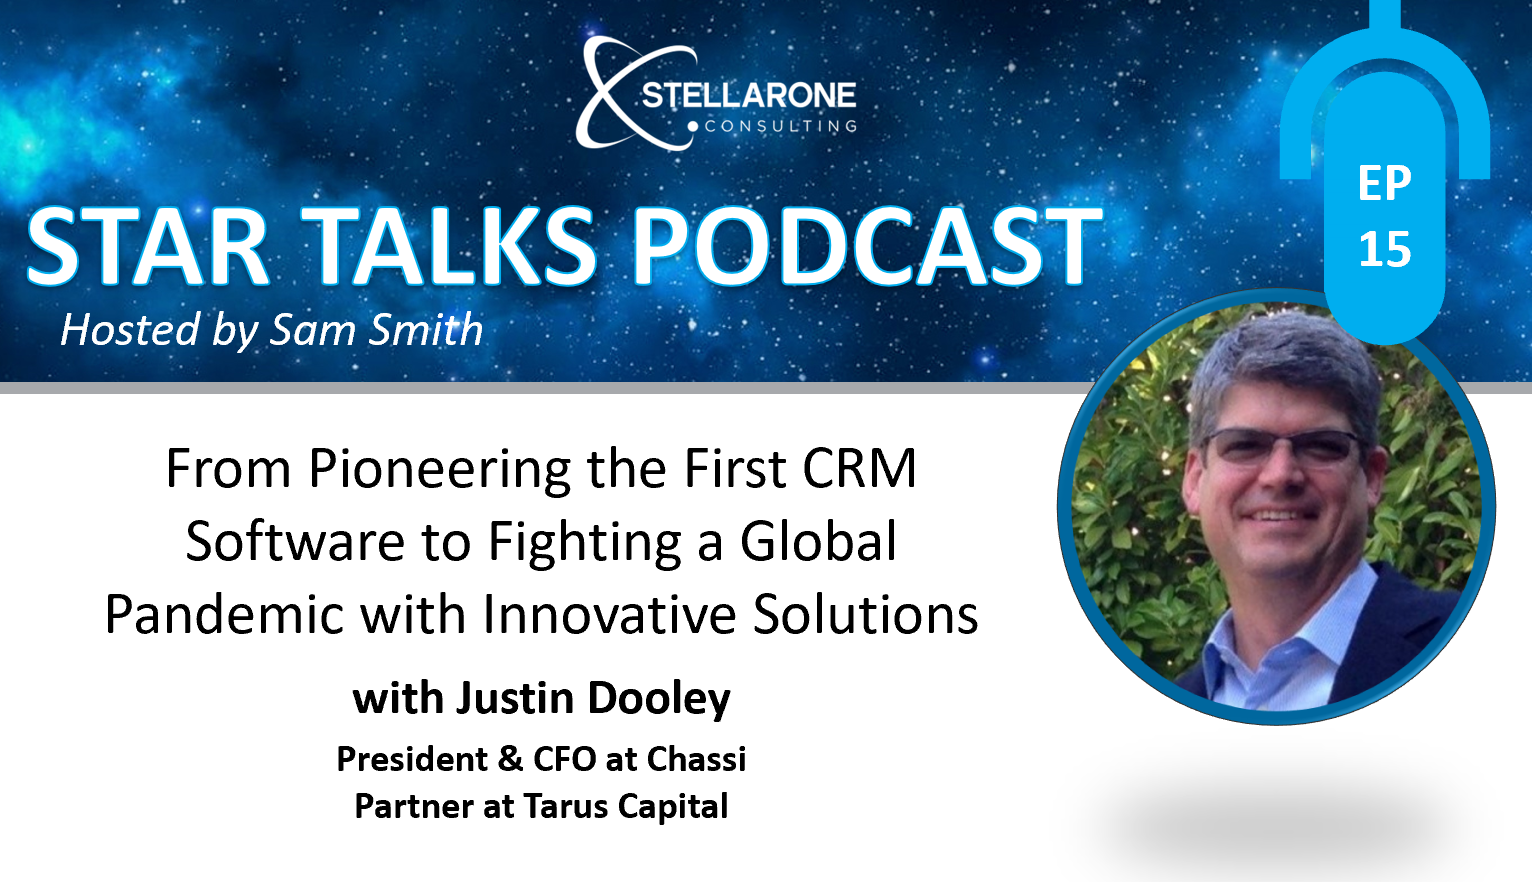 PODCAST:From Pioneering the First CRM Software to Fighting a Global Pandemic with Innovative Solutions